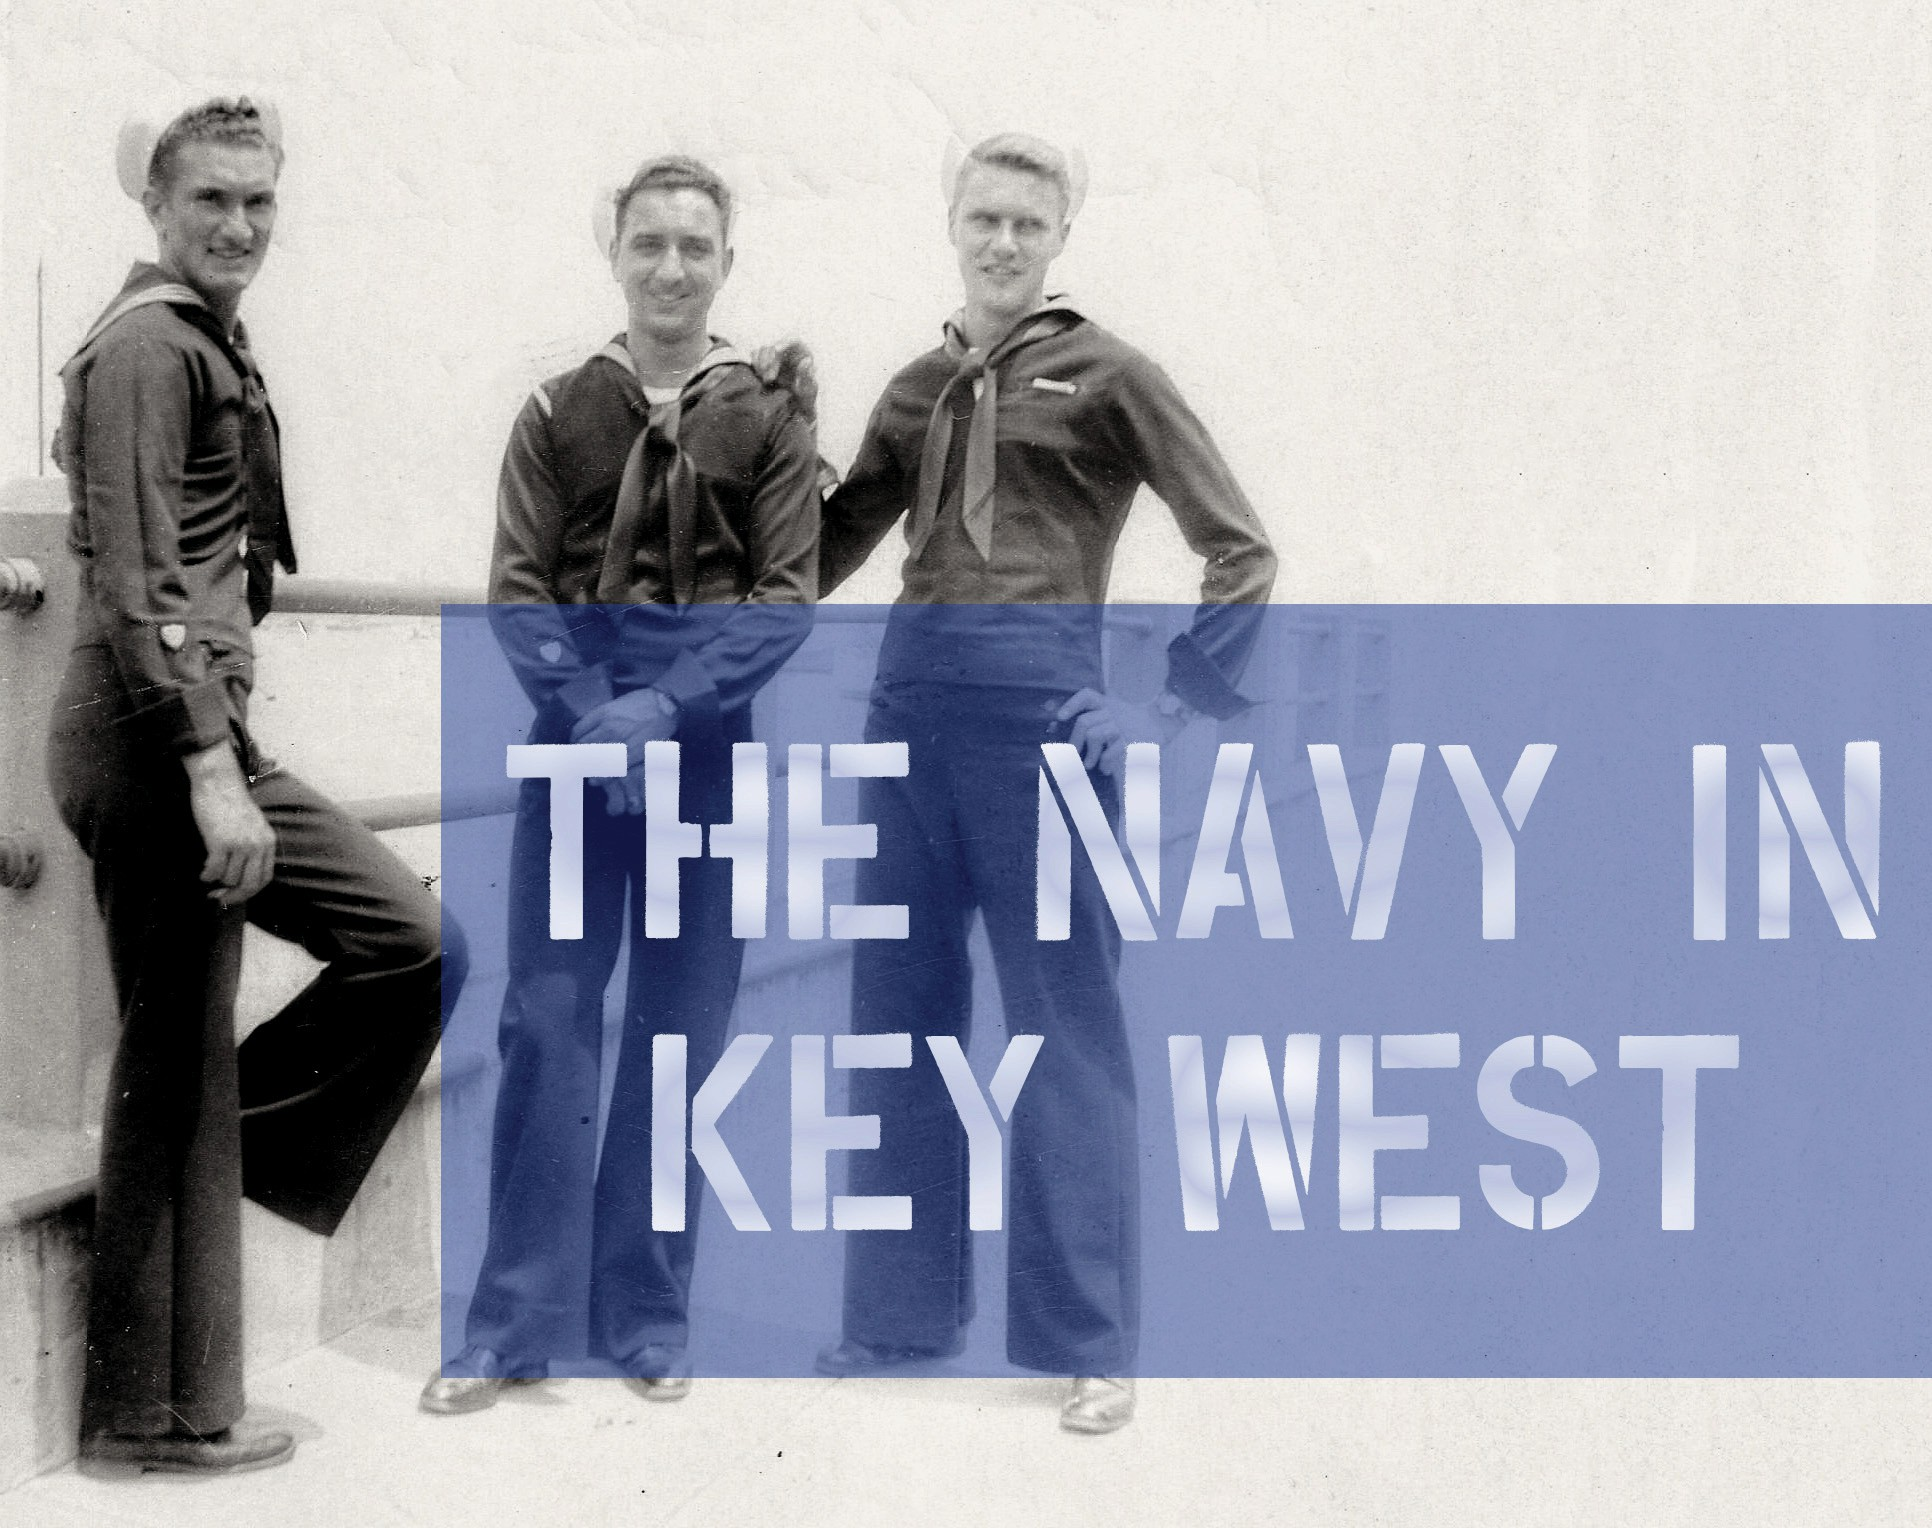 'The Navy in Key West' exhibition celebrates the connection between the U.S. Navy and Key West presented by the Key West Art & Historical Society at the Custom House Museum from Jan. 13 through December 2017.